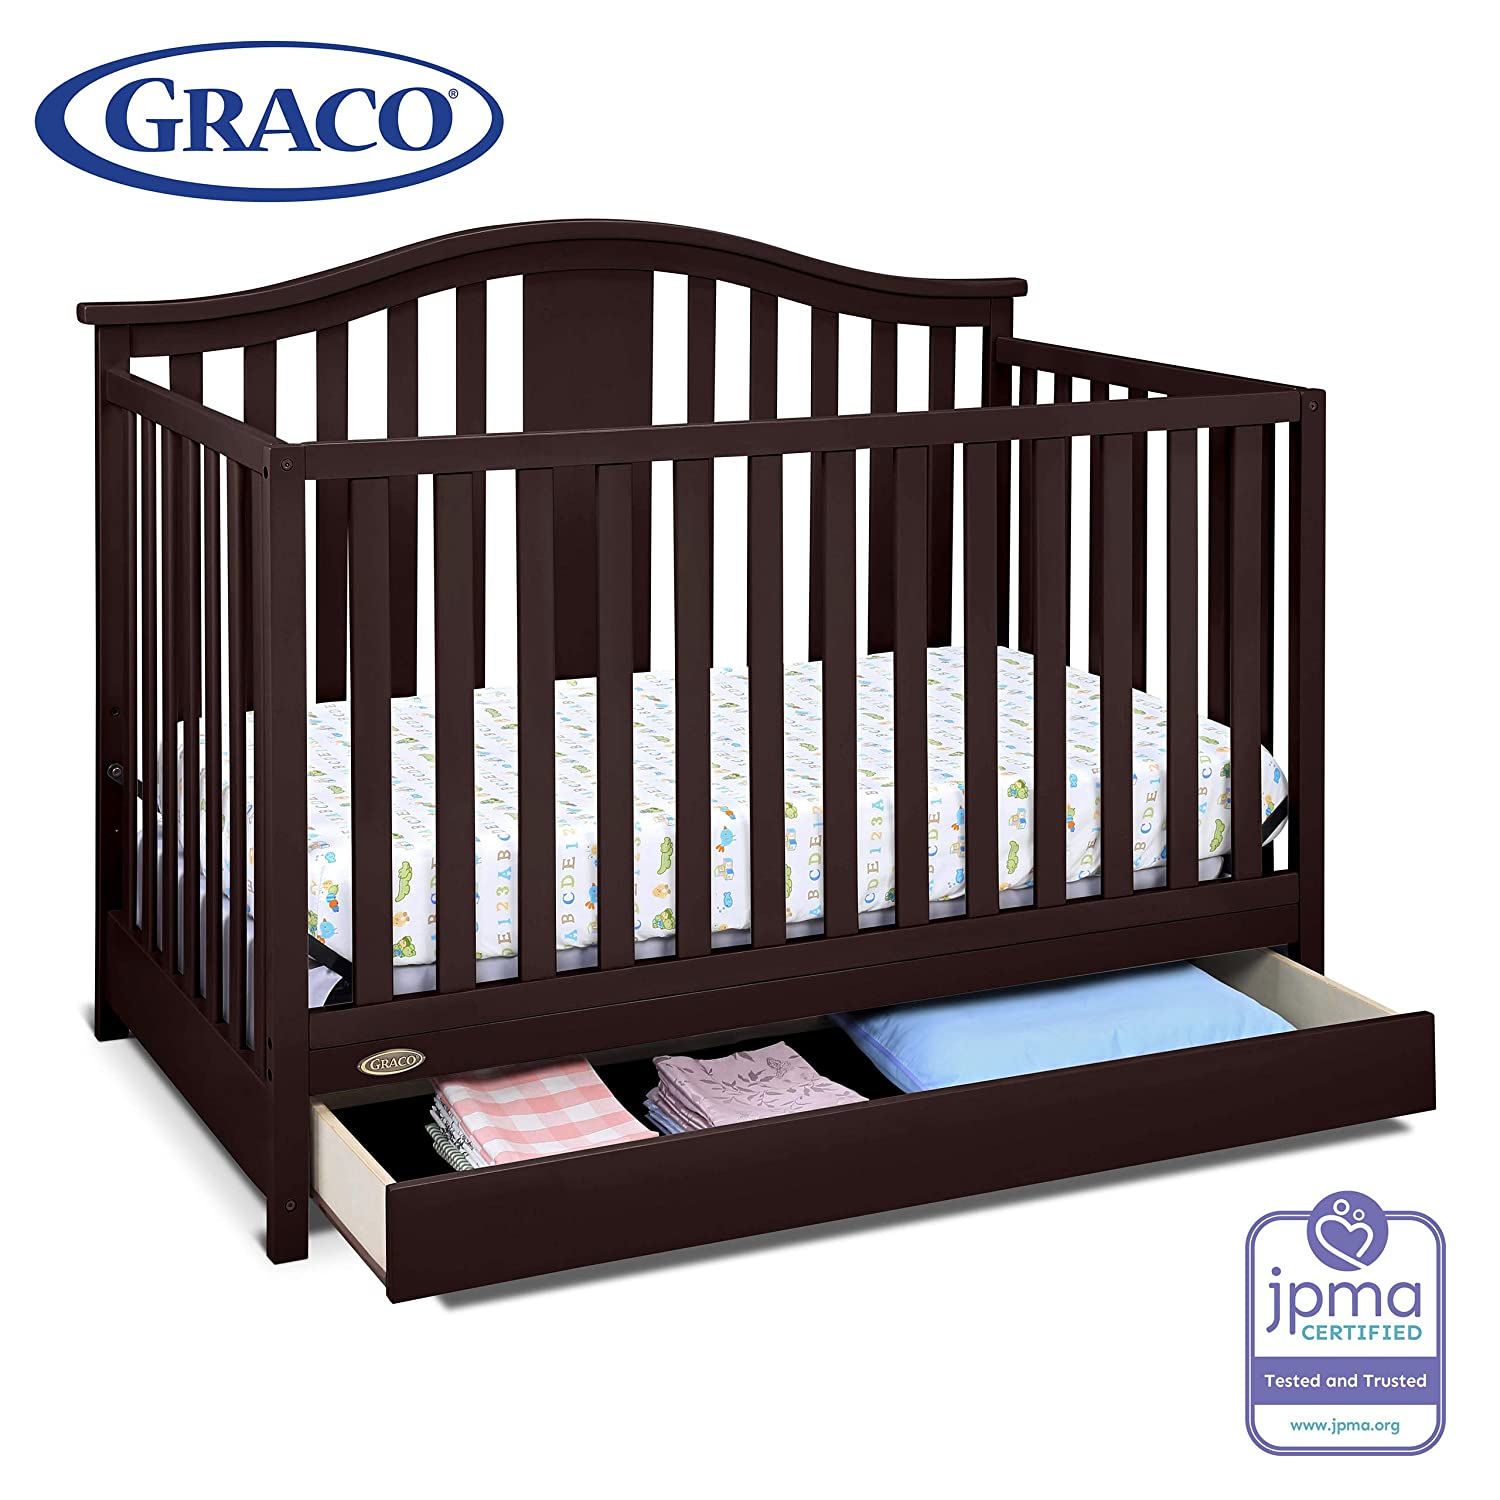 Graco Solano Crib with Drawer: The Best Convenient Crib